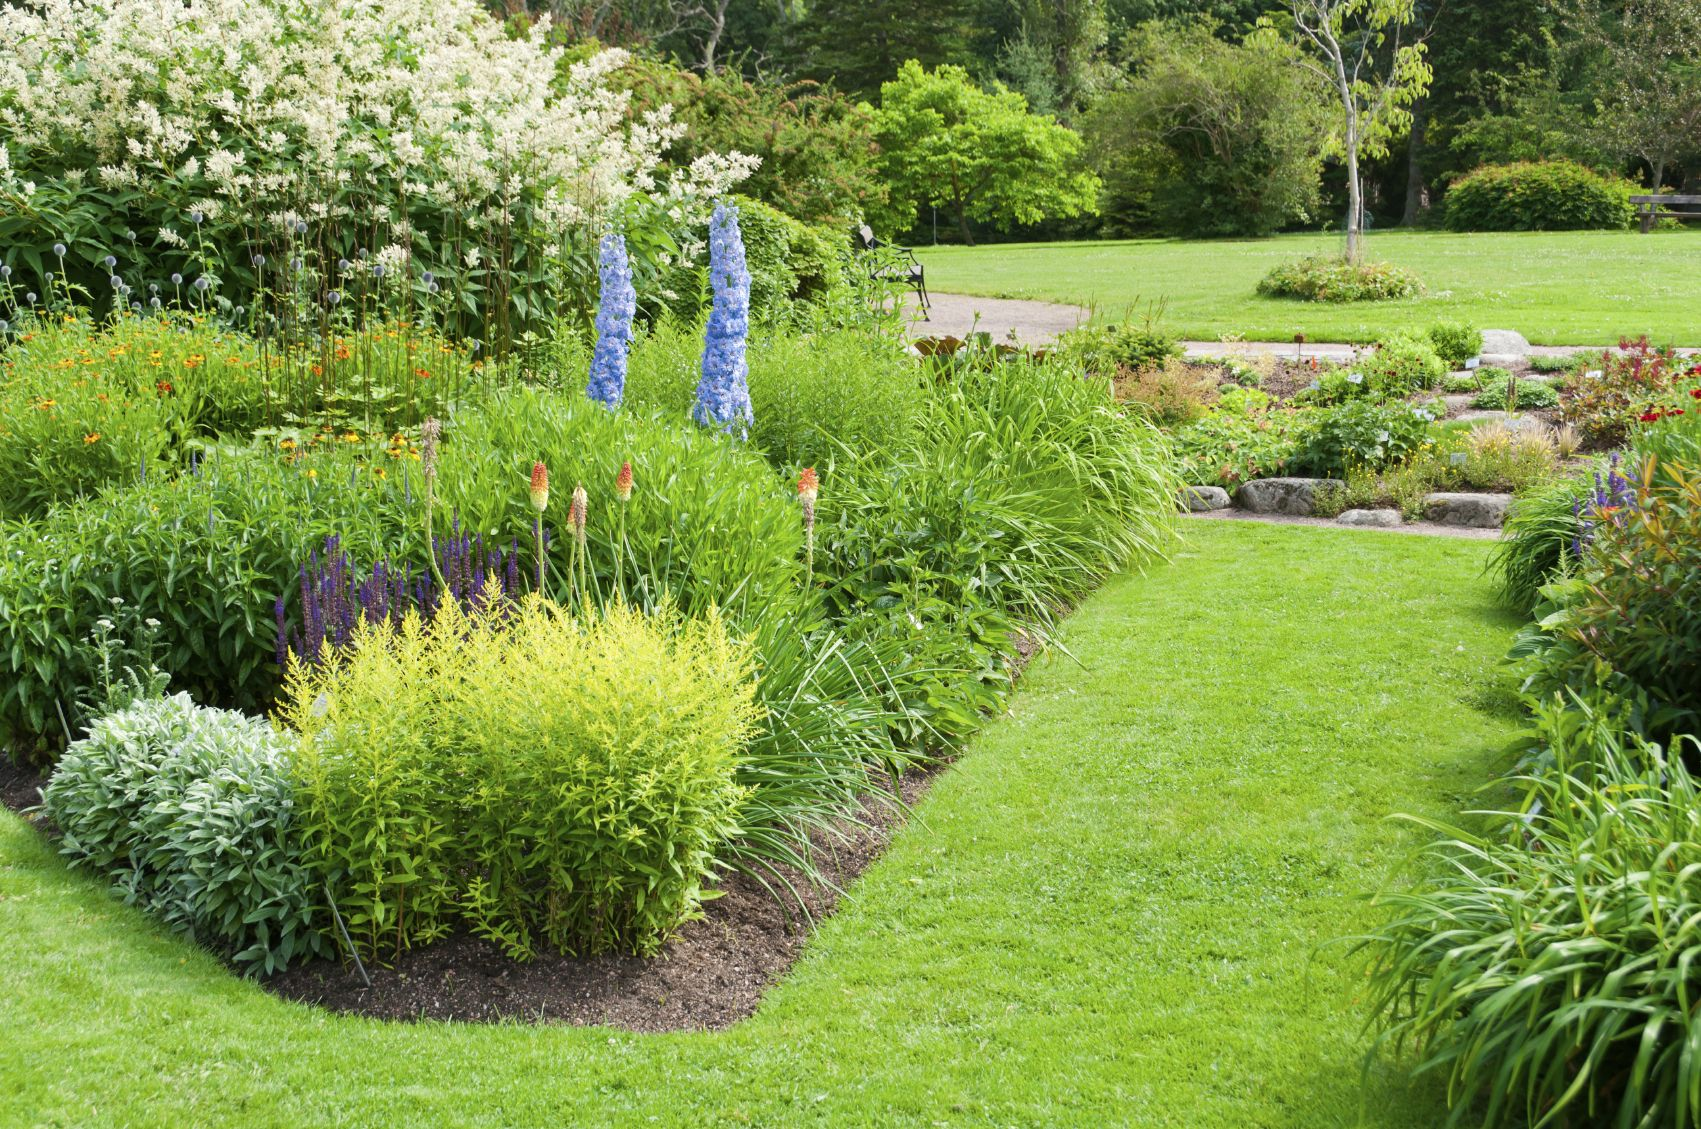 Landscaping And Yard Services Garden Landscape Design Landscape Design Services Front Yard Landscaping